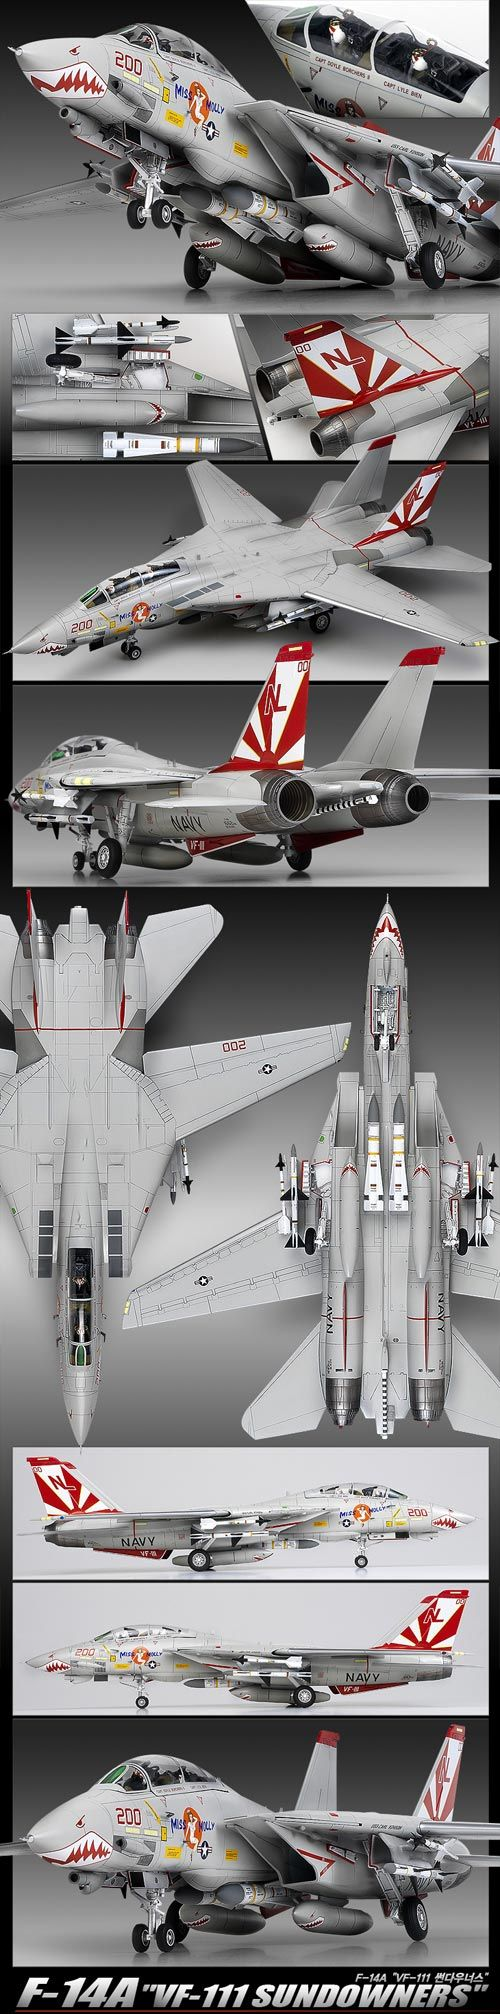 In the original pic you can read: Vought F-8E 'VF-111 Sundowners 1/32 Scale Model But I see a Tomcat F-14